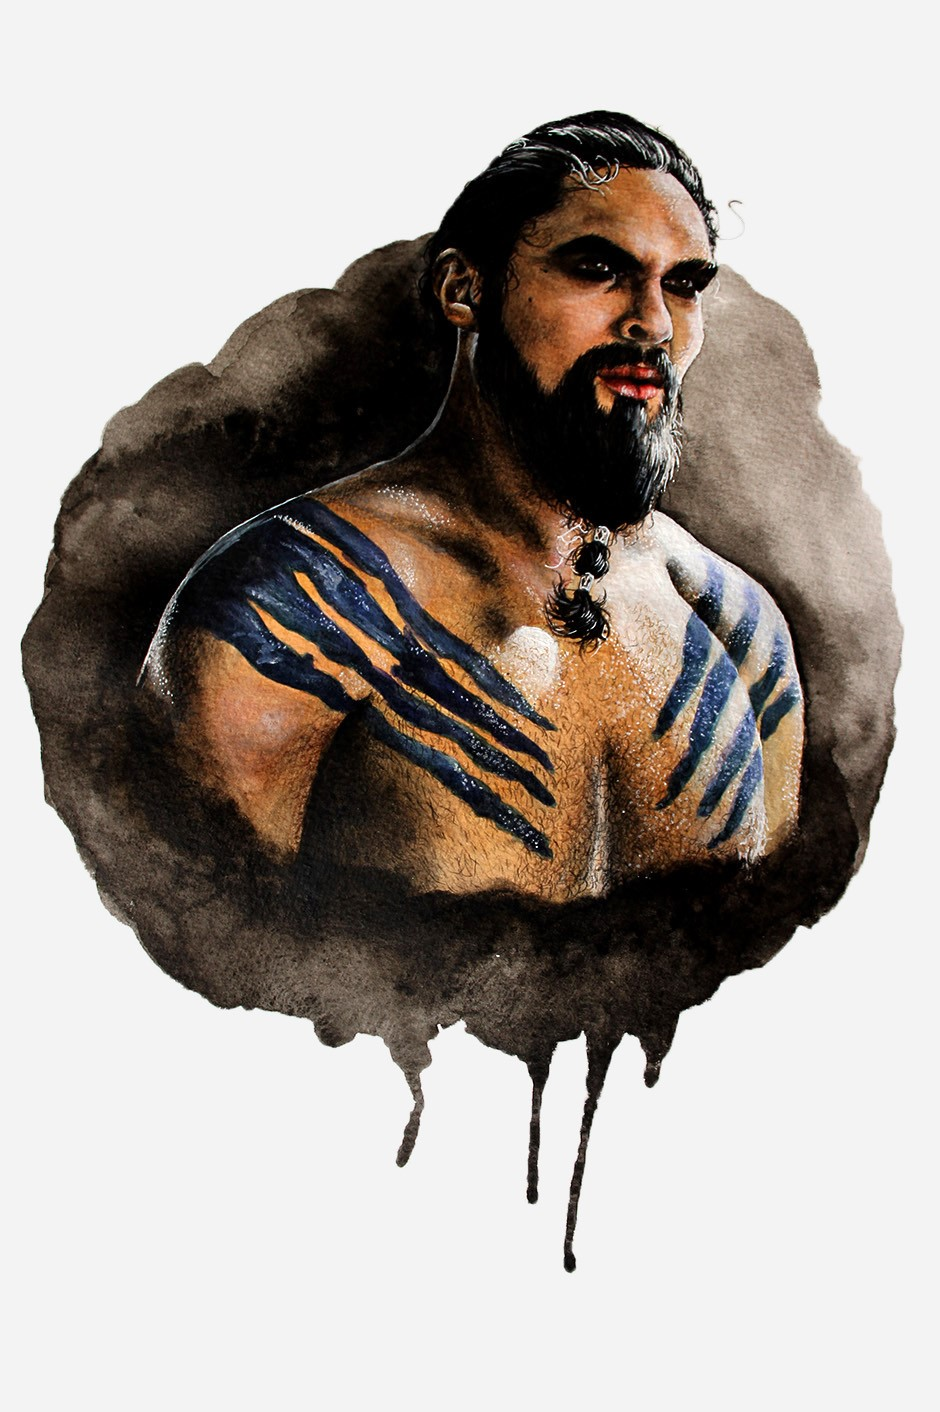 Khal Drogo mixed media illustration by Holly Khraibani